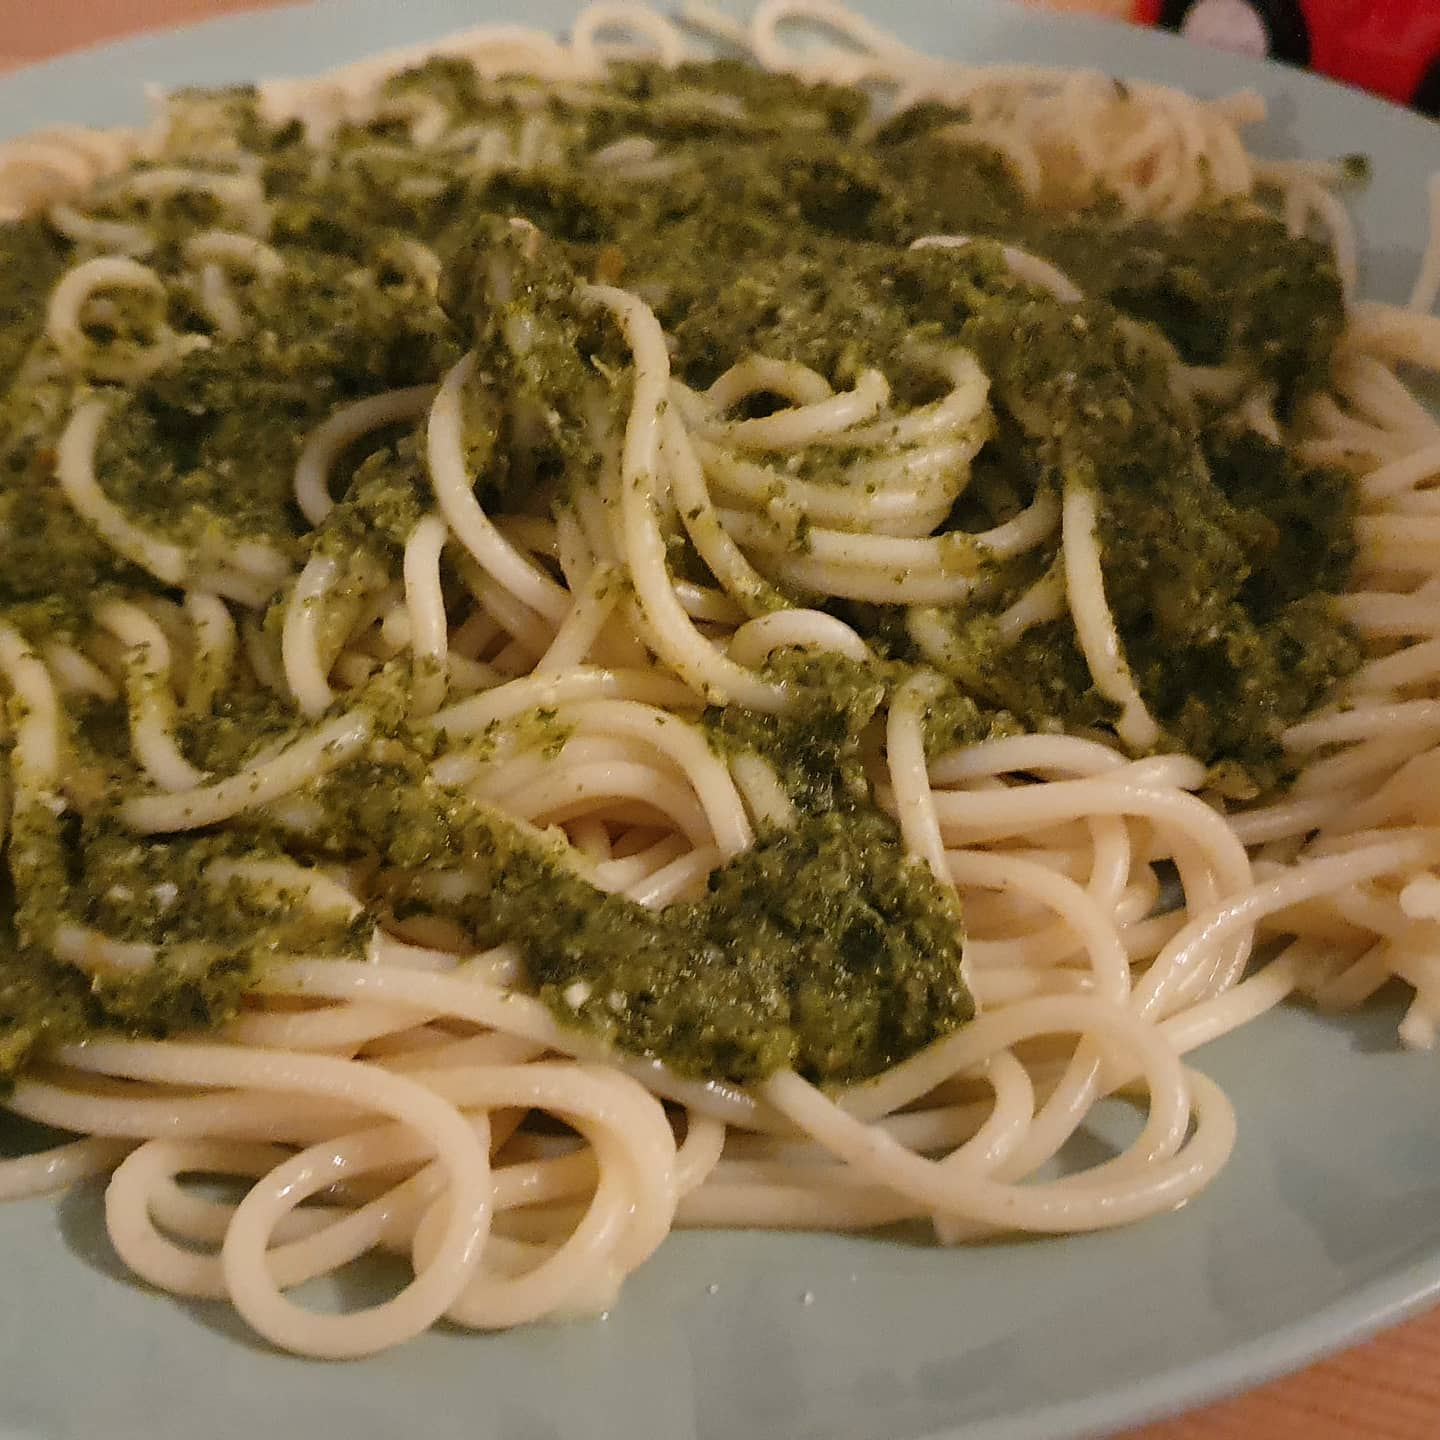 Insta pasta with some interesting pesto made out of kale,